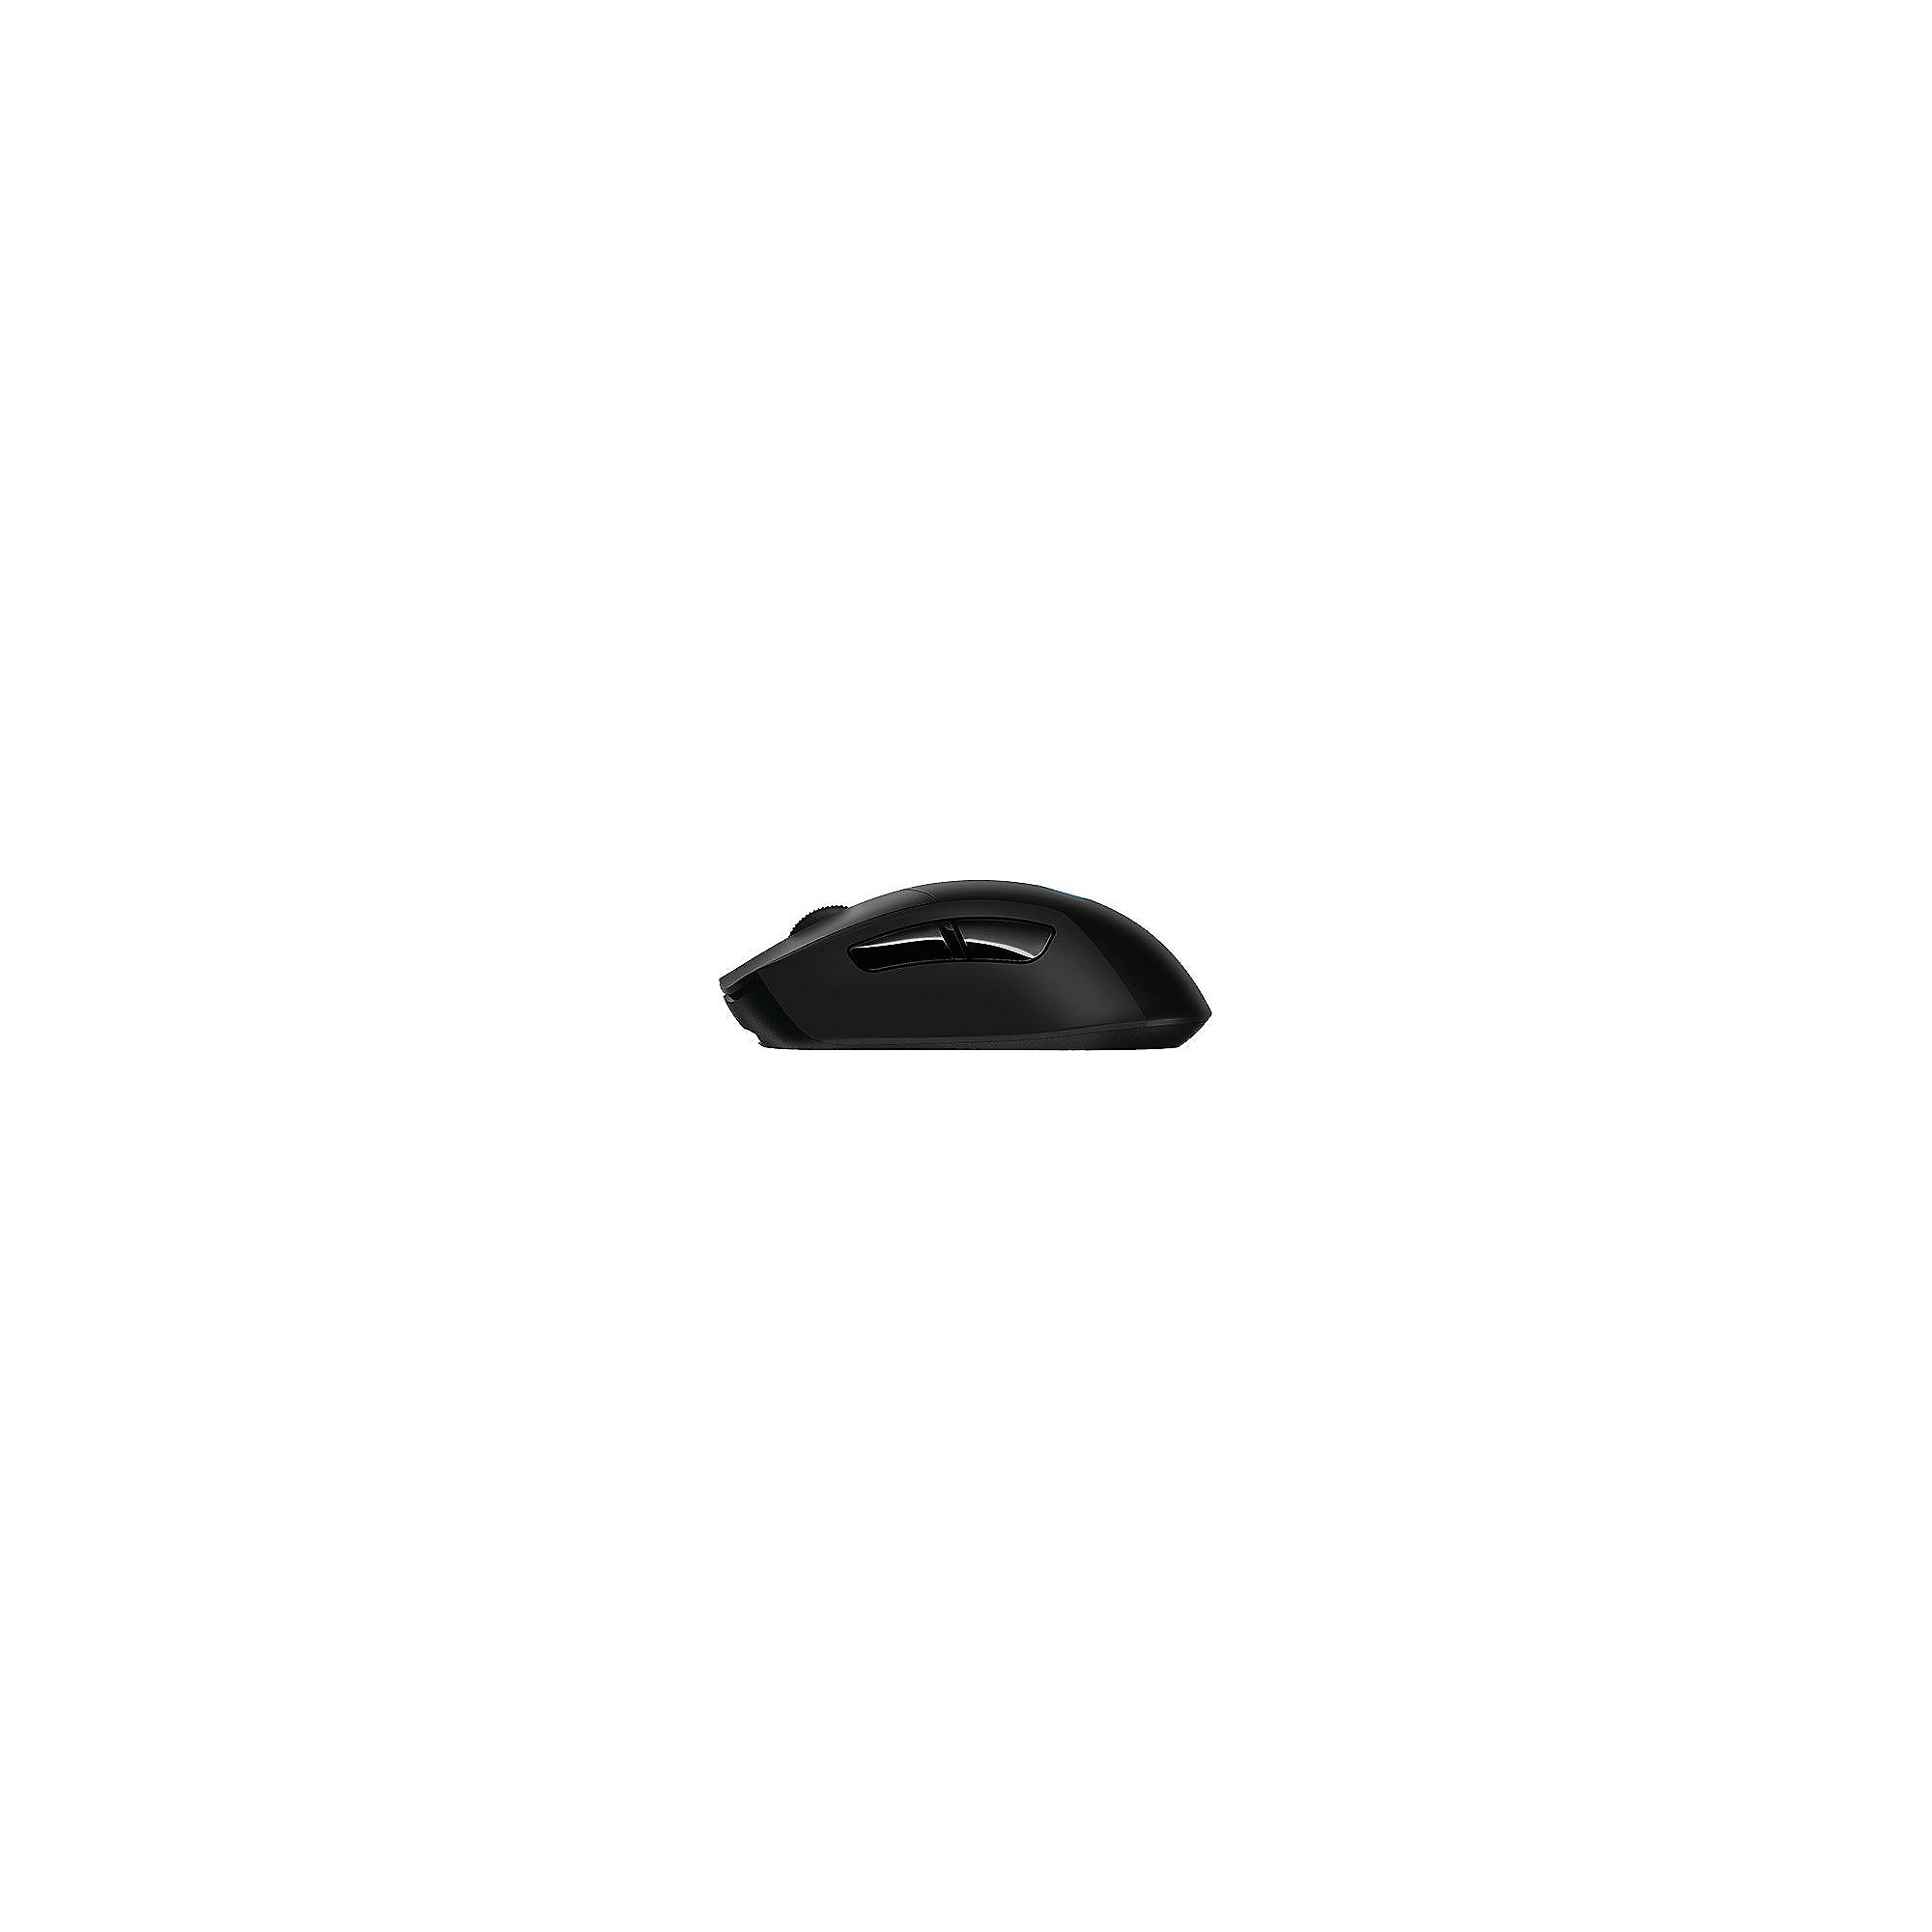 Logitech G403 Prodigy Wireless Gaming Mouse